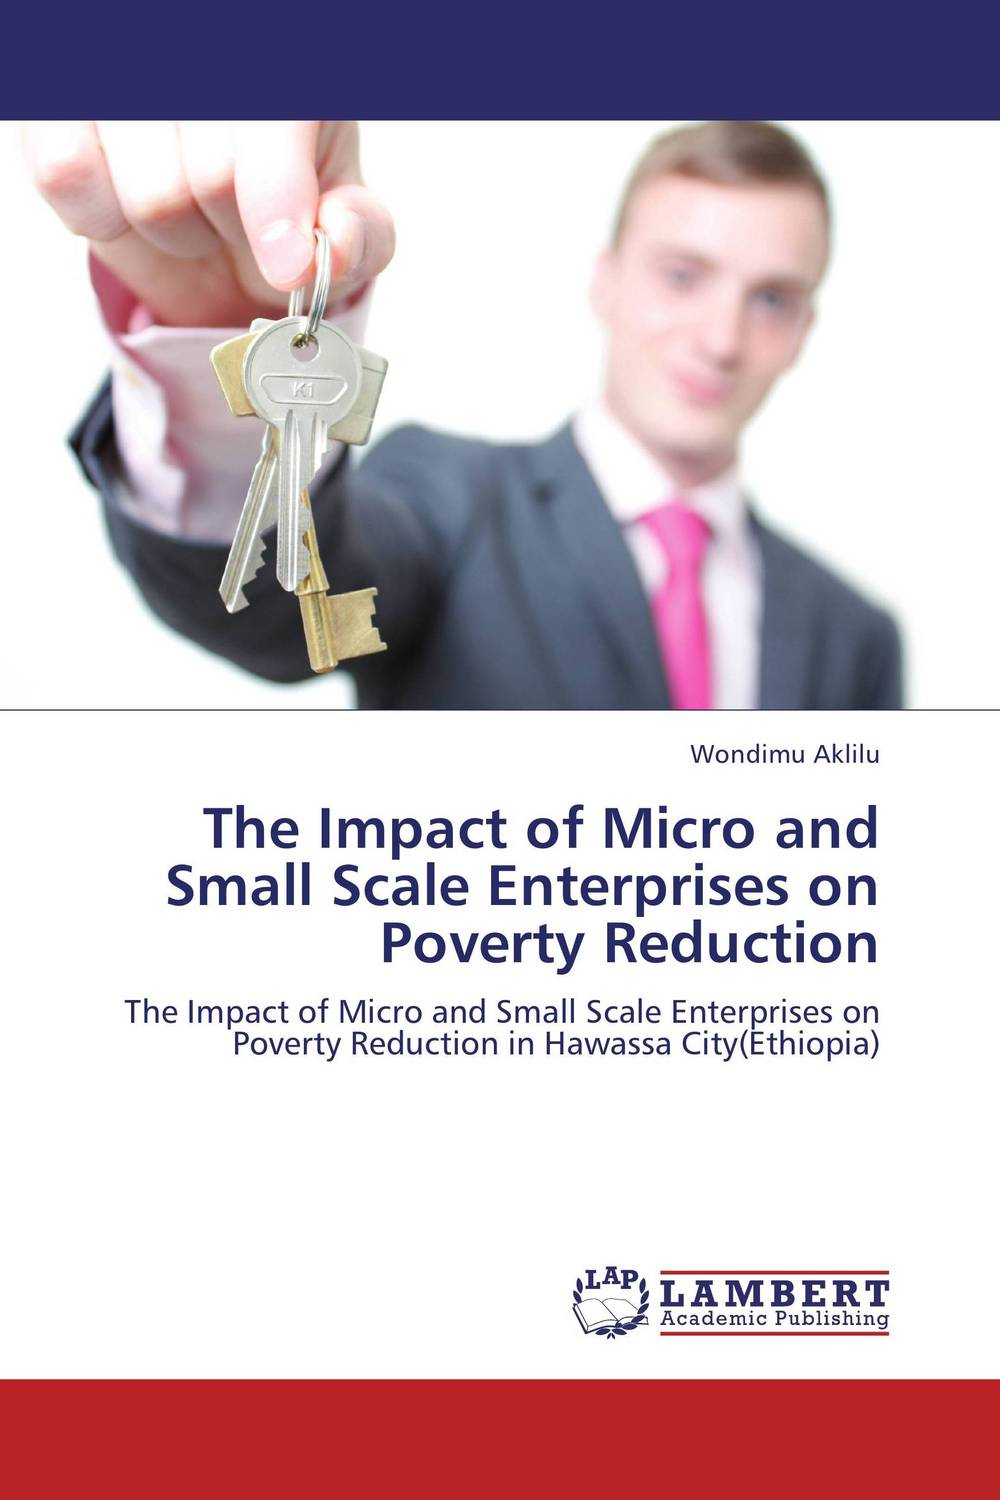 The Impact of Micro and Small Scale Enterprises on Poverty Reduction sources of chloride and its impact on groundwater